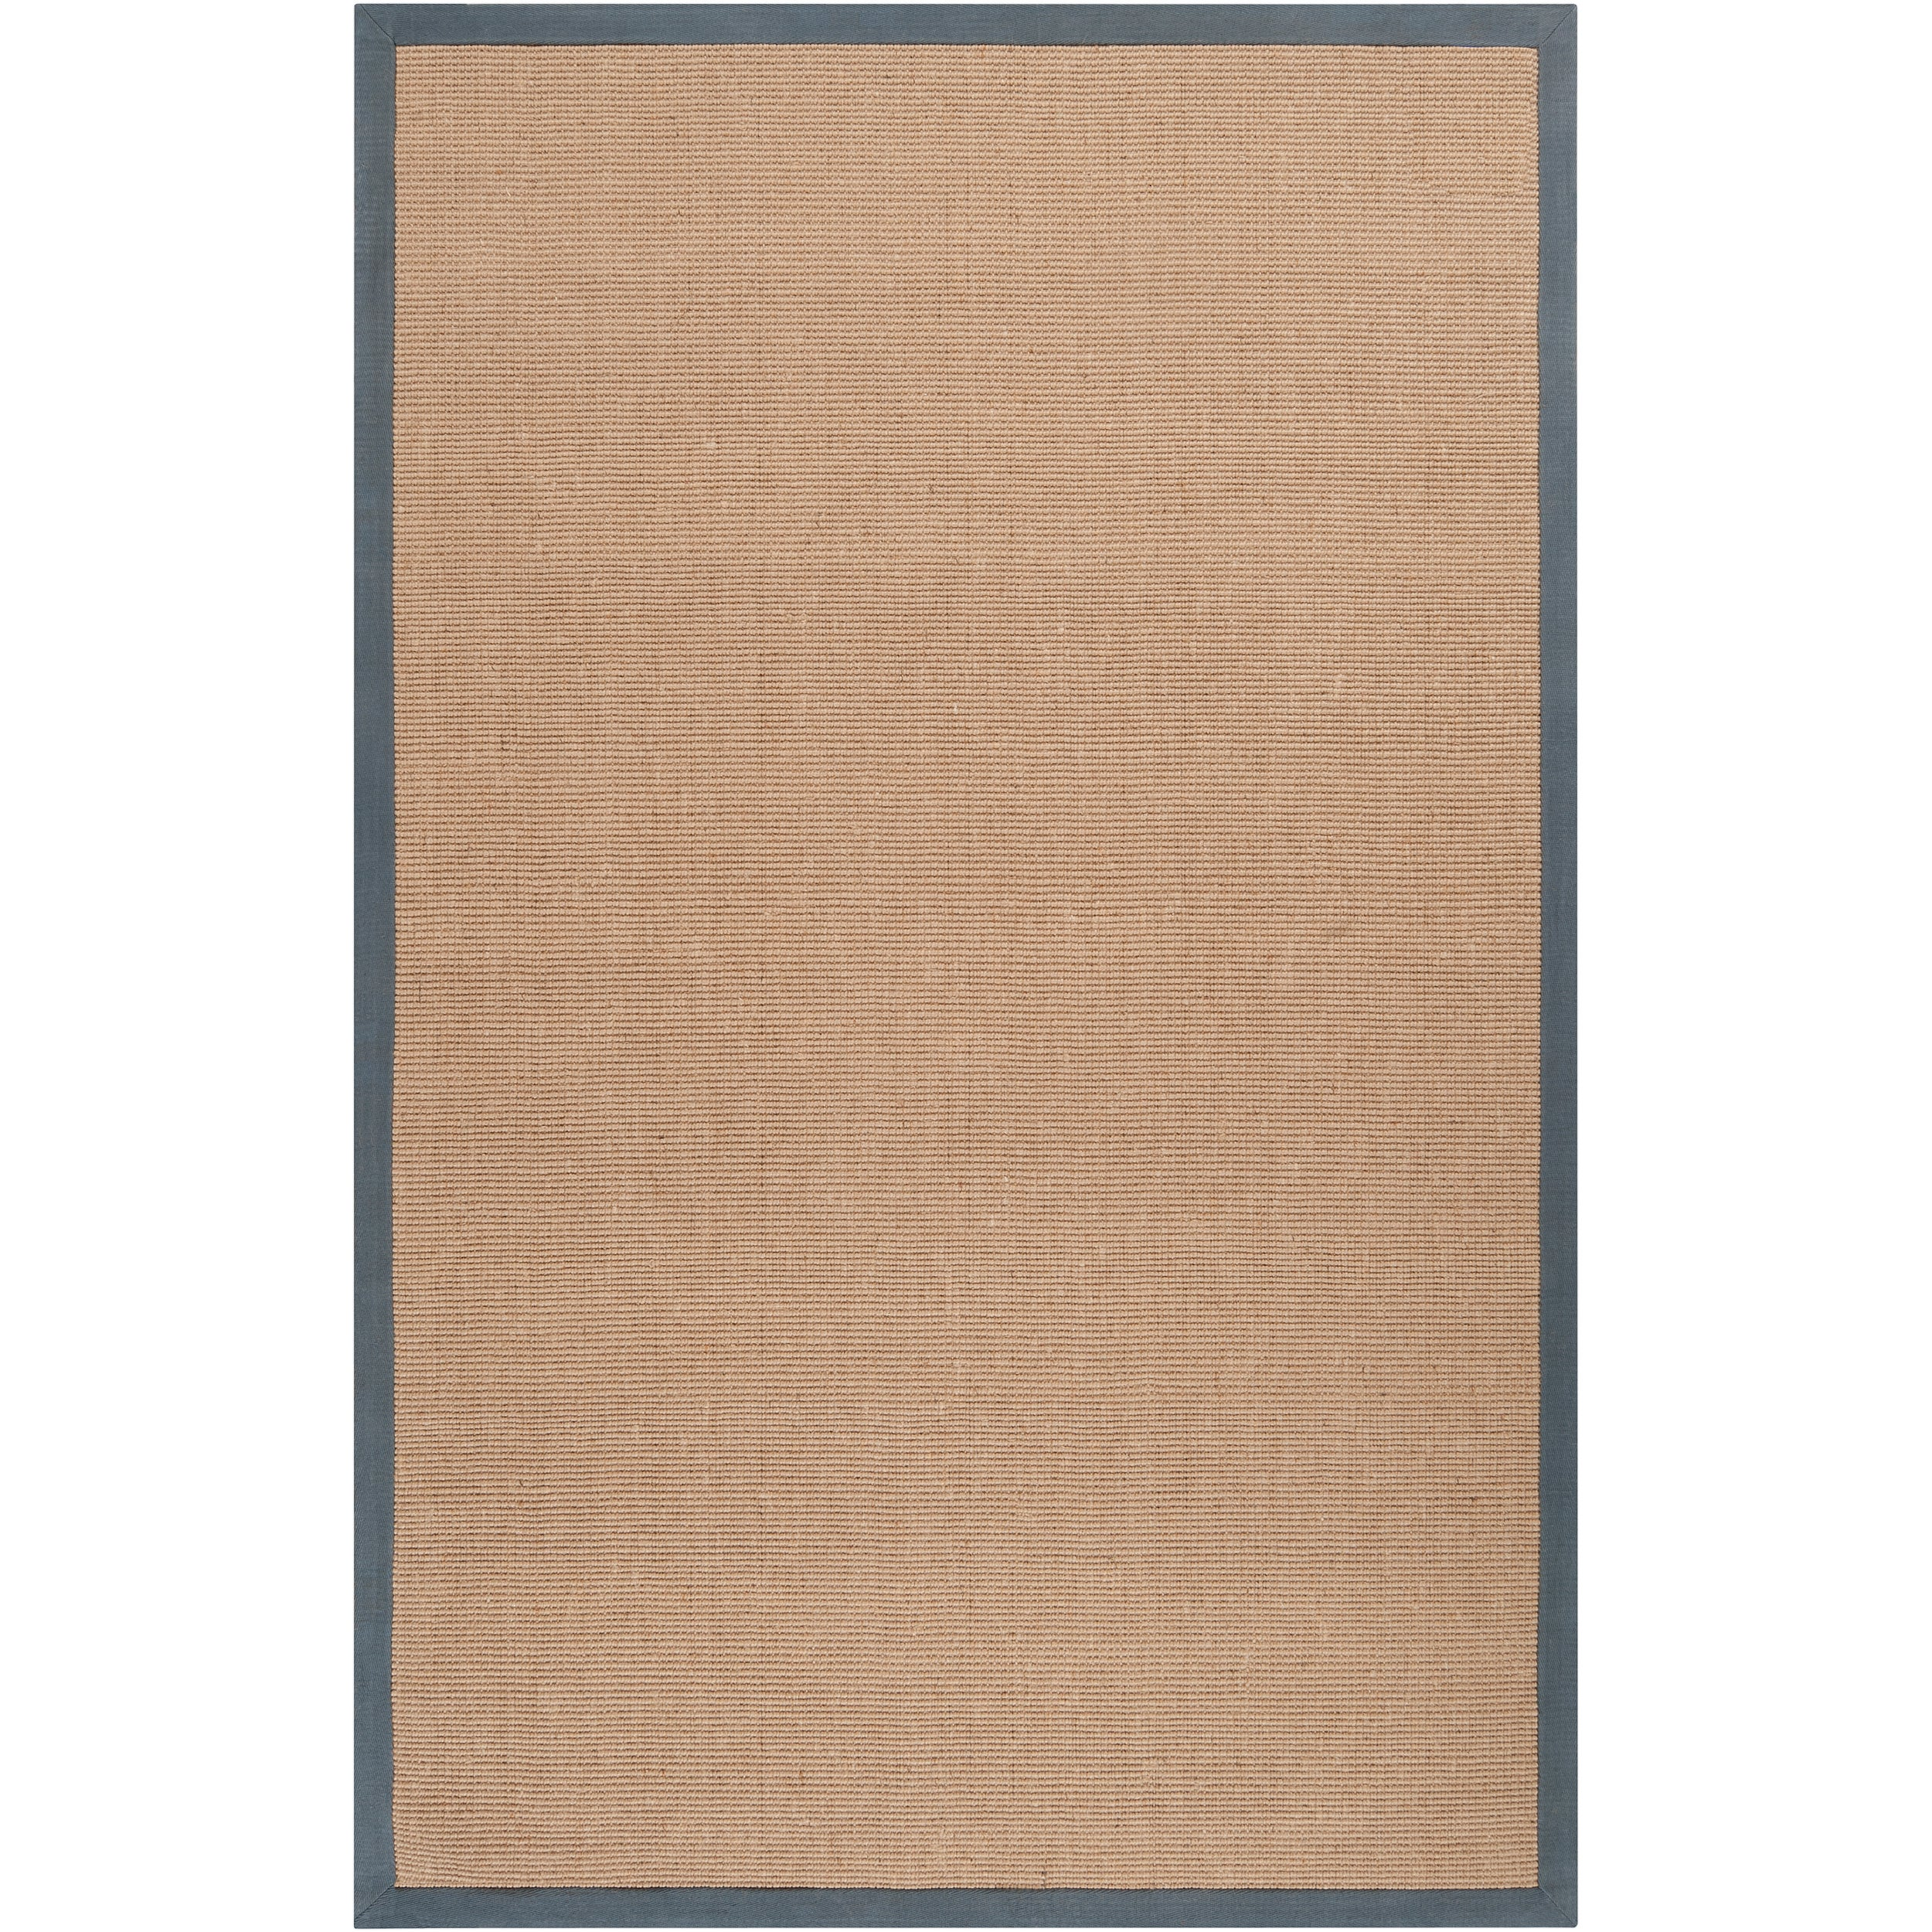 Hand-woven Gray Sophie A Natural Fiber Jute Area Rug (5' x 8')